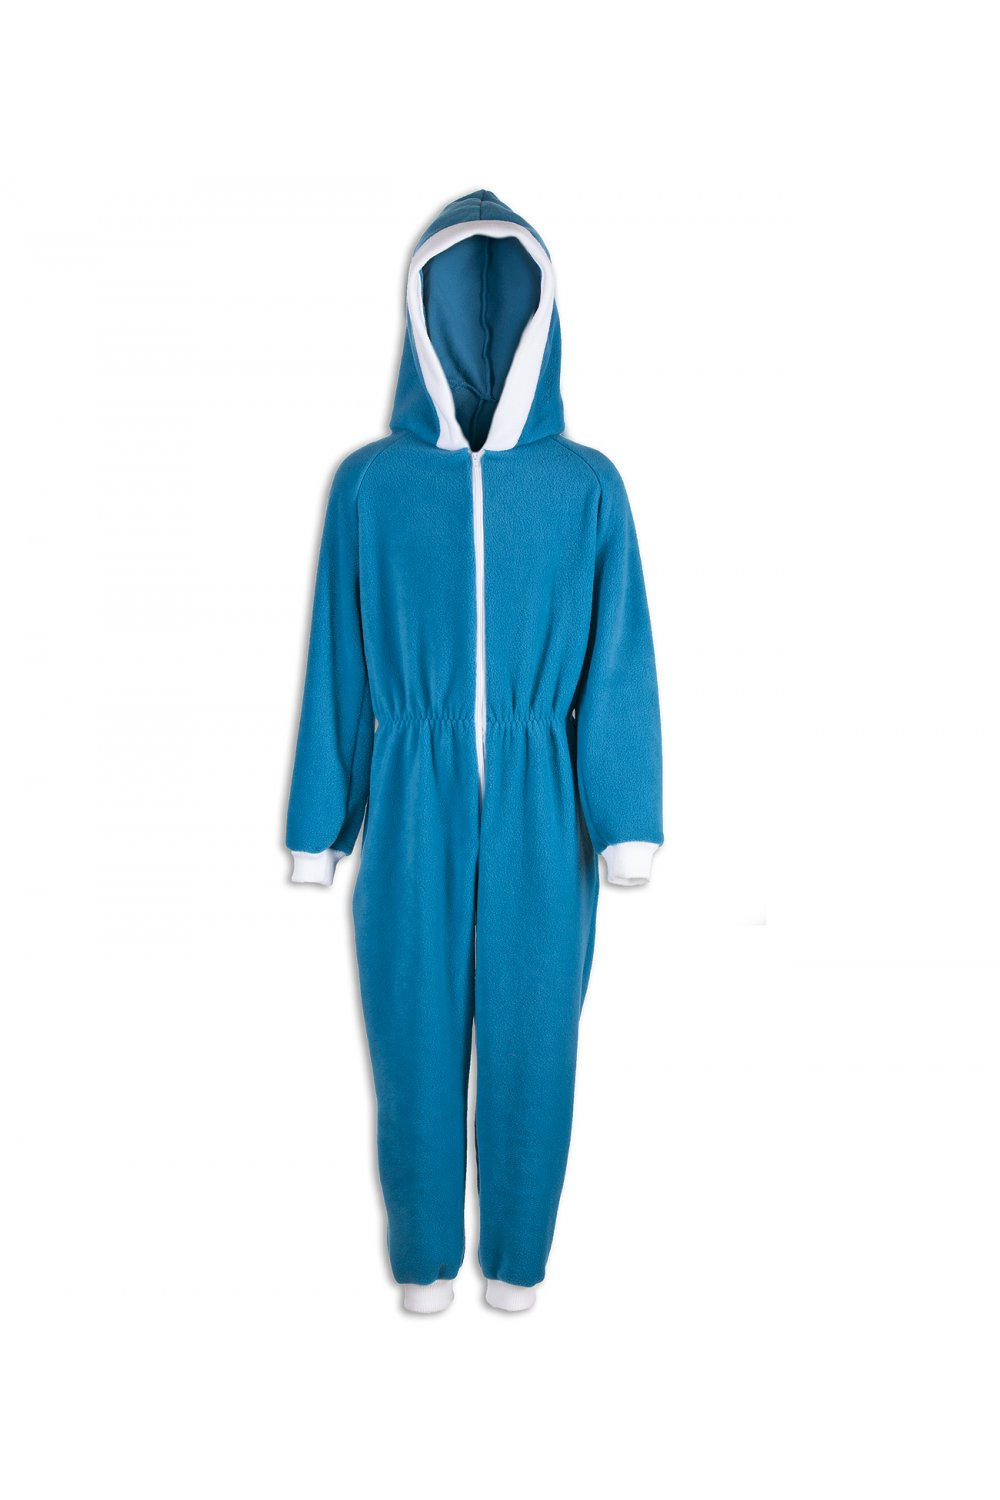 f95fc73e10 Camille Childrens Unisex Blue Colour All In One Pyjama Onesie